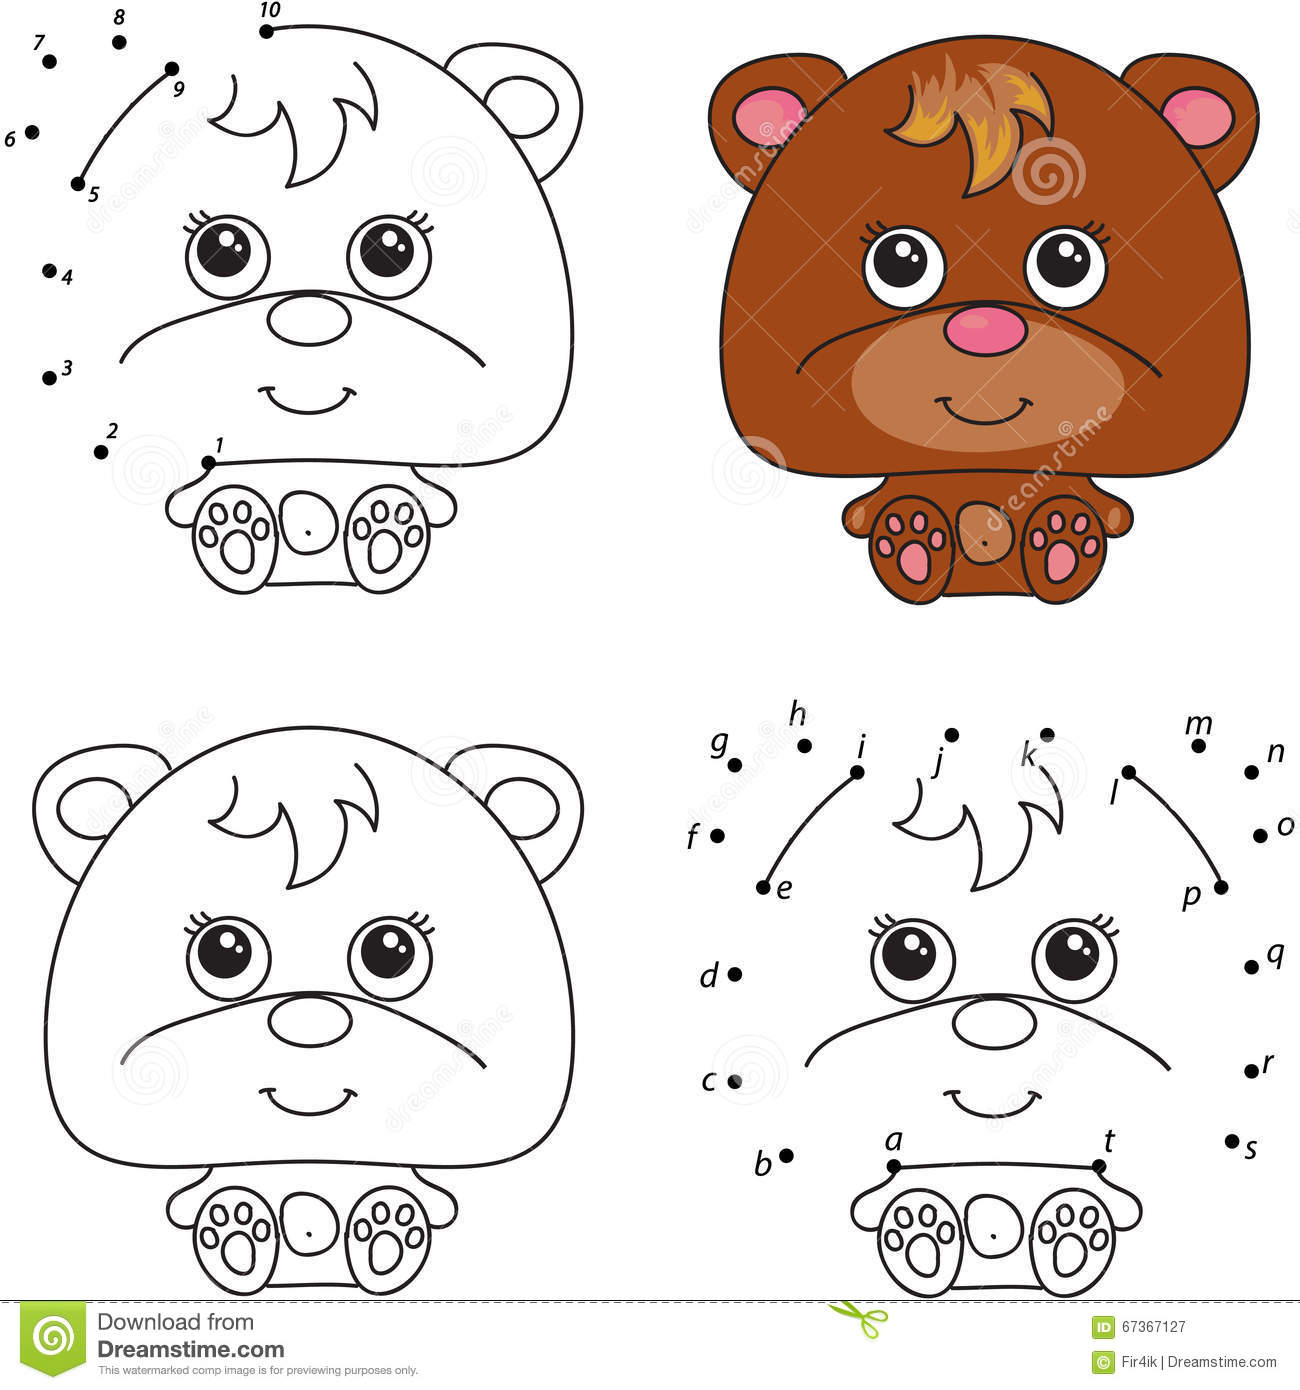 Co coloring books game - Co Coloring Books Game Coloring Book And Dot To Dot Game For Kids